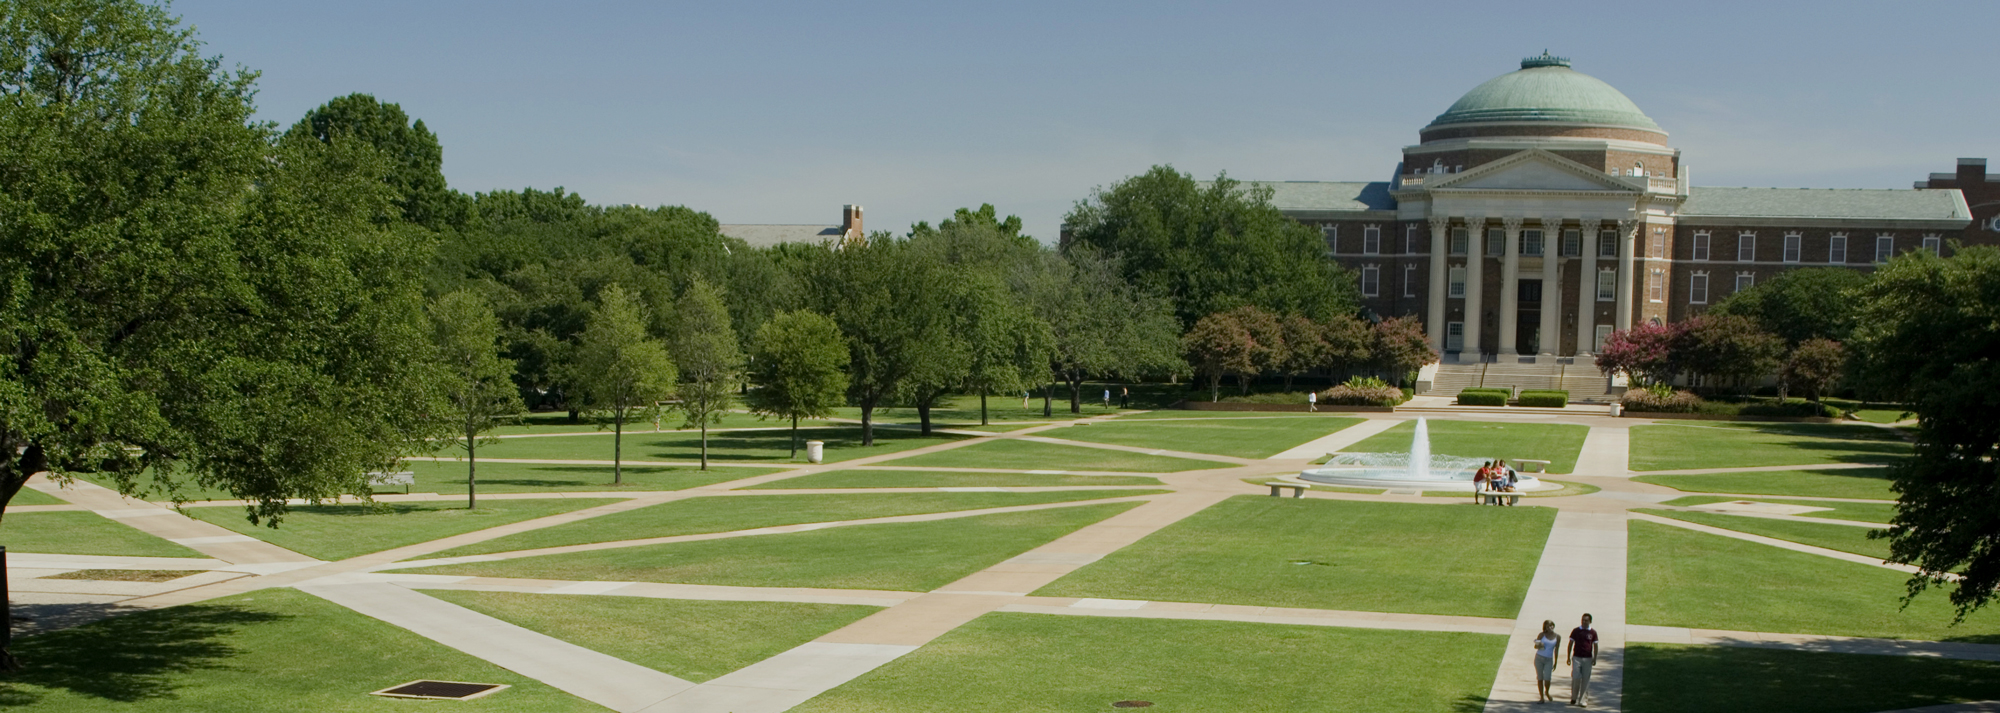 Photograph of main quadrangle in front of Dallas Hall.